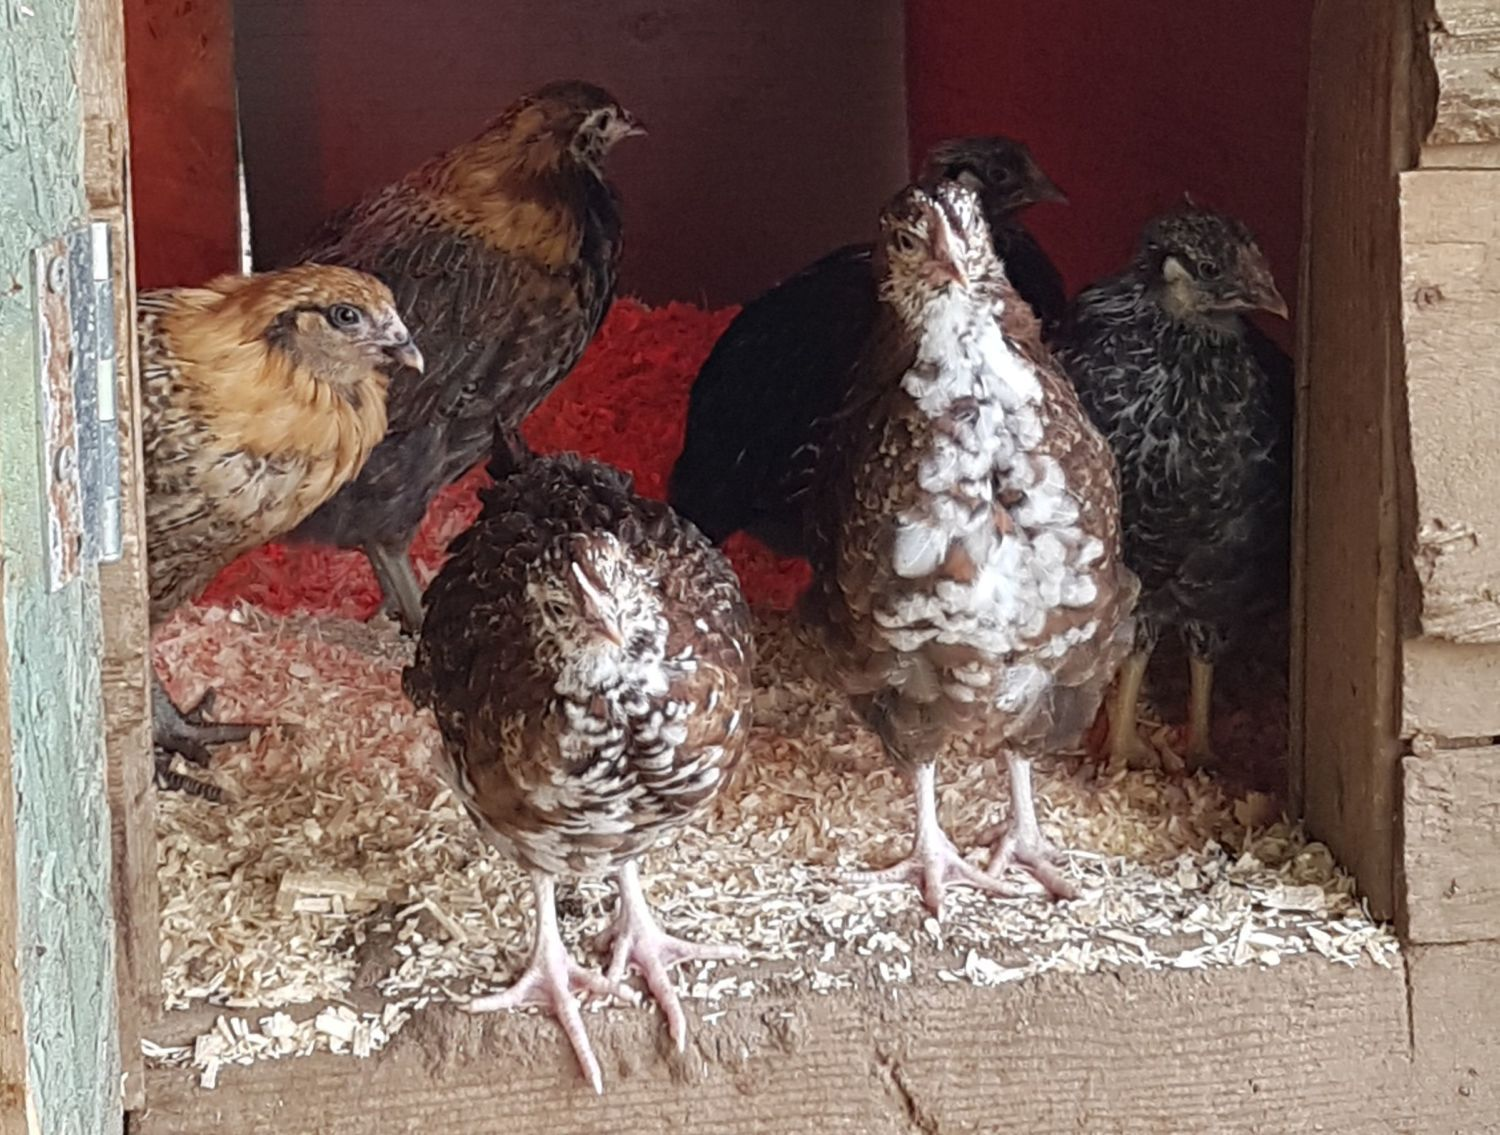 FirstTimeFlock's photos in Pullet or Roo? I've been a chicken owner for one week! Help please! Lol